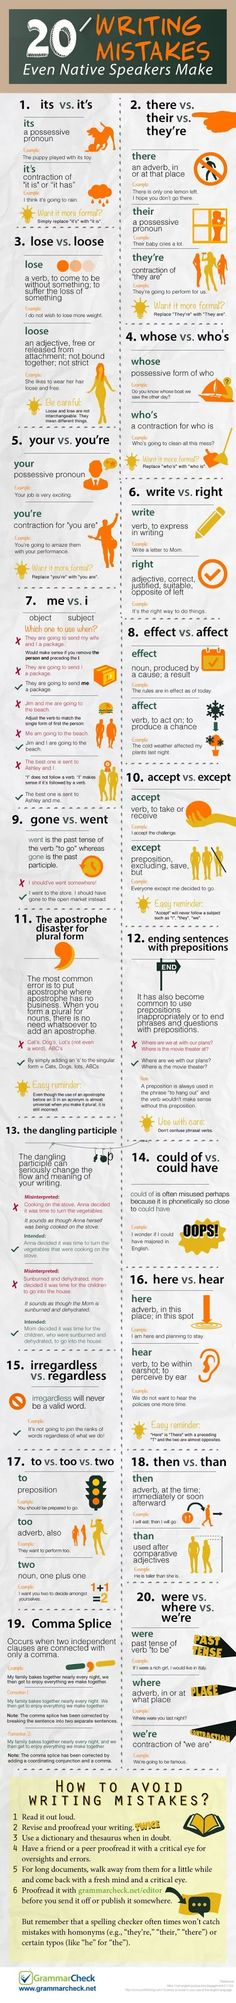 Common writing mistakes explained